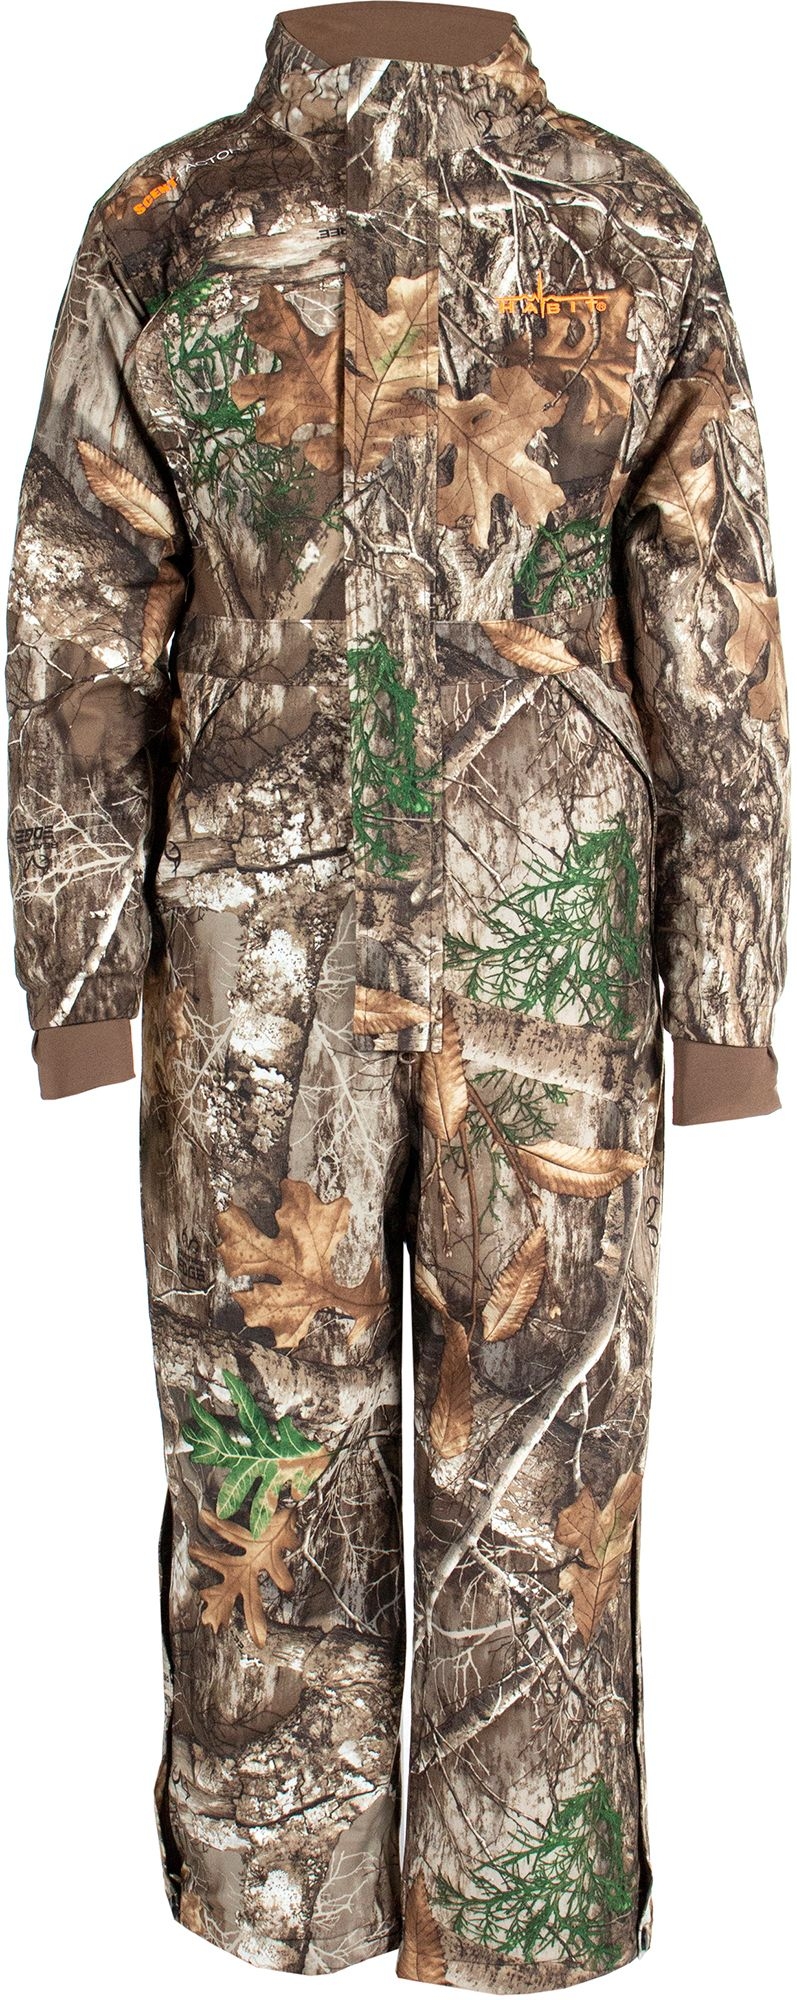 Habit Youth Cedar Branch Insulated Hunting Coverall, Kids, YS, Multi thumbnail